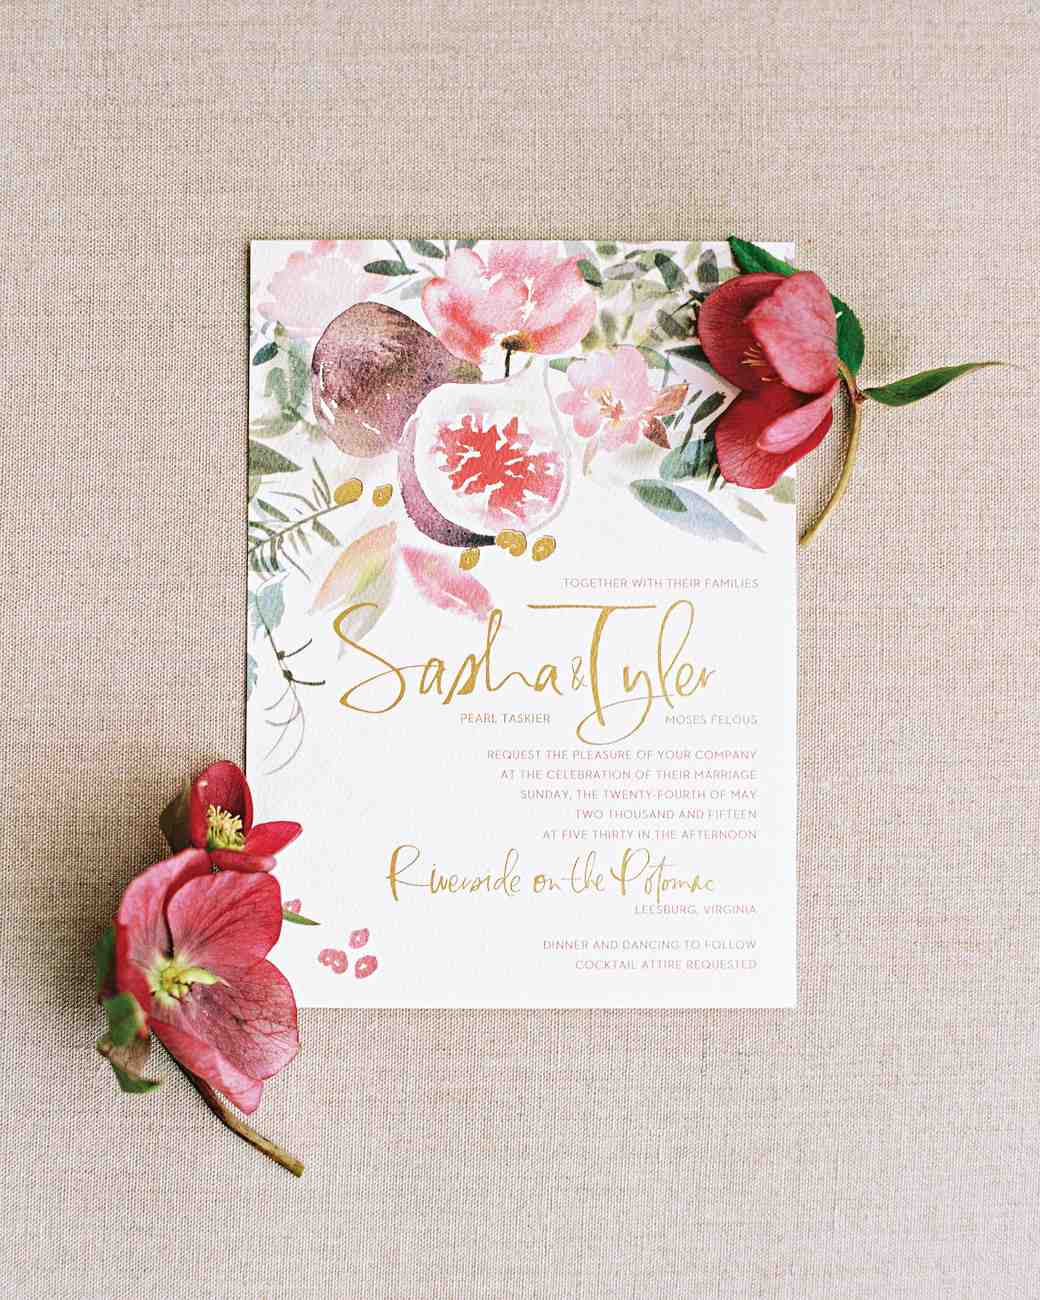 sasha-tyler-wedding-virginia-invitation-15-s112867.jpg